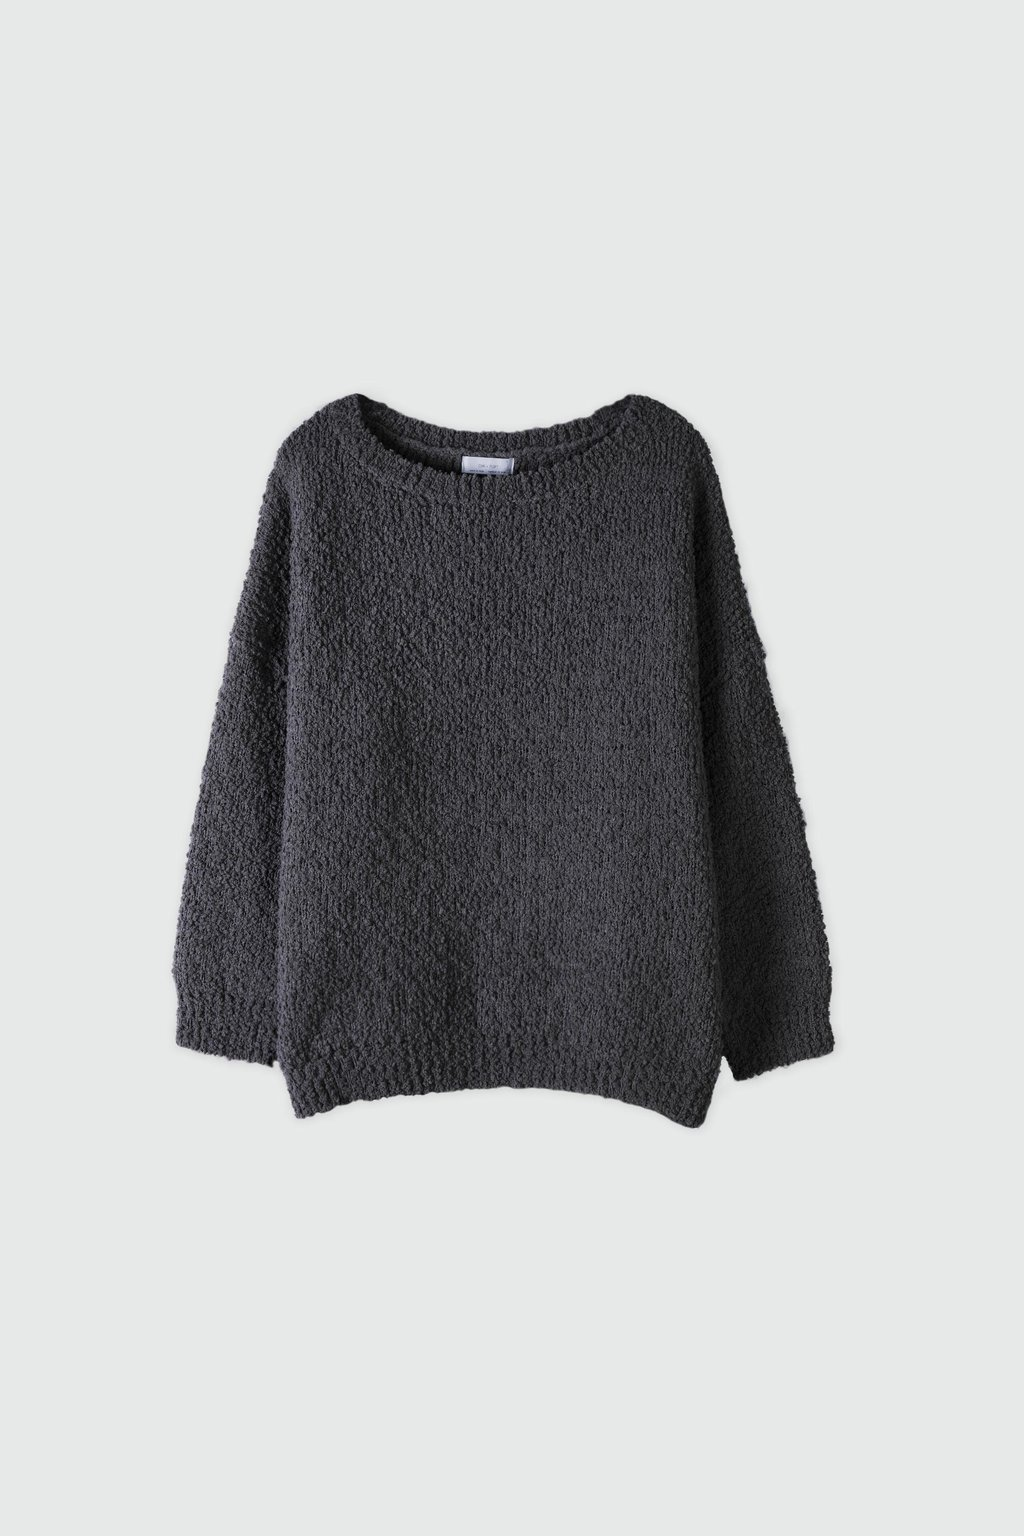 Sweater 3082 Dark Gray 10